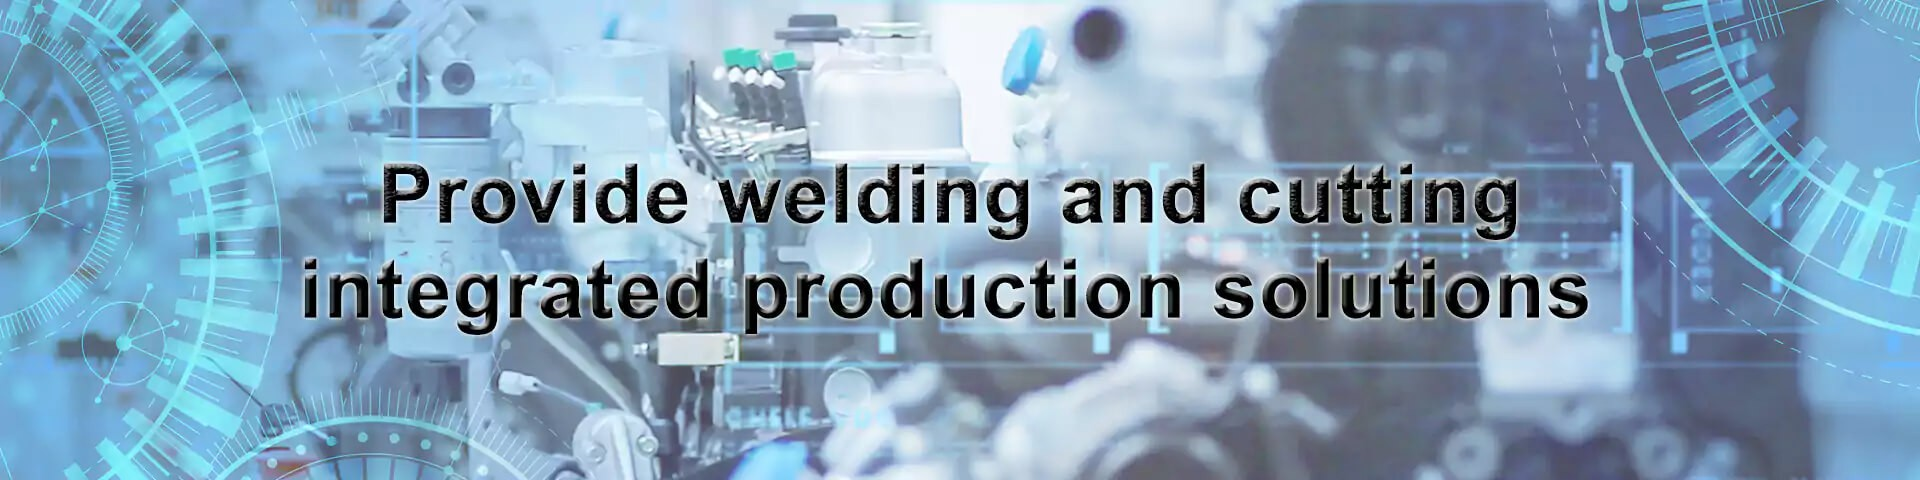 Provide welding and cutting integrated production solutions